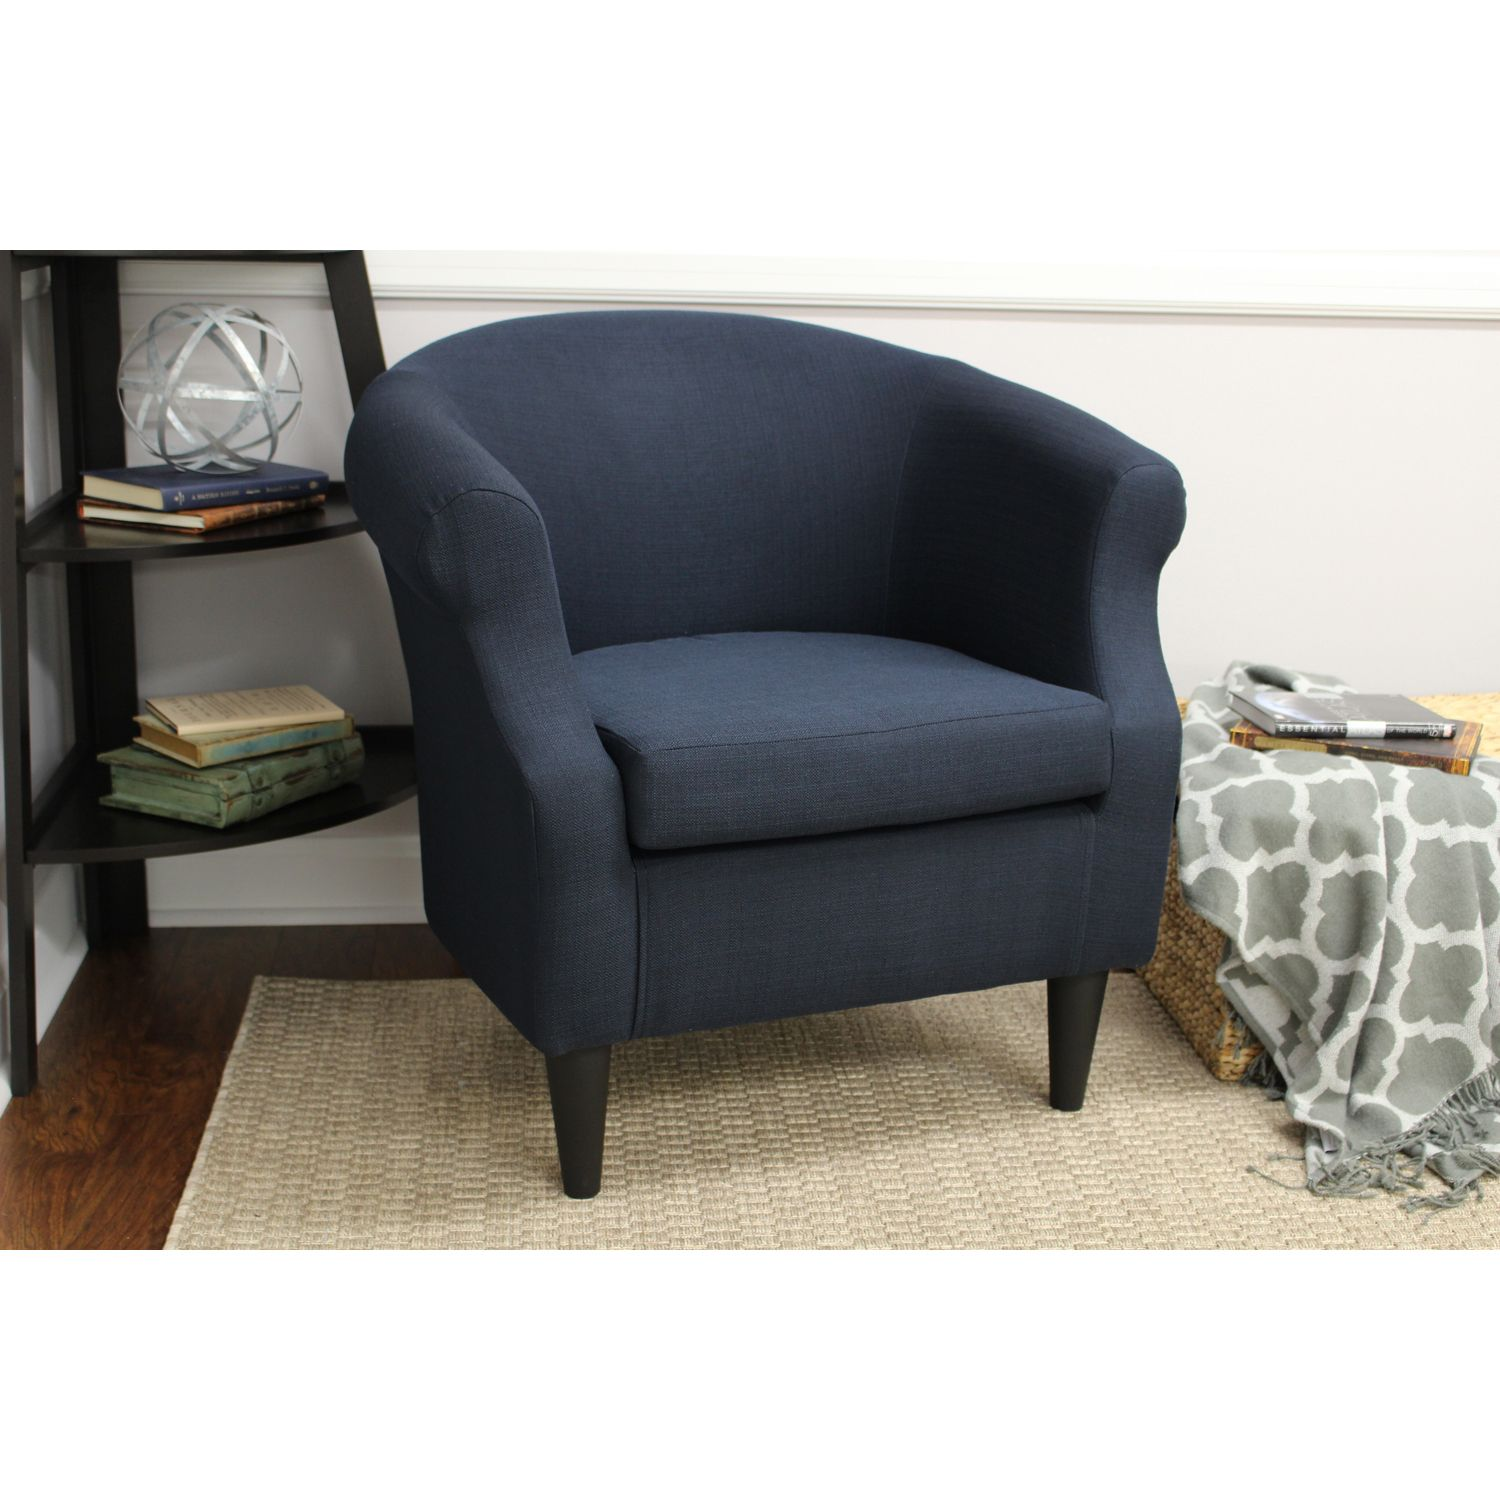 Nikole Navy Club Chair | Pier 1